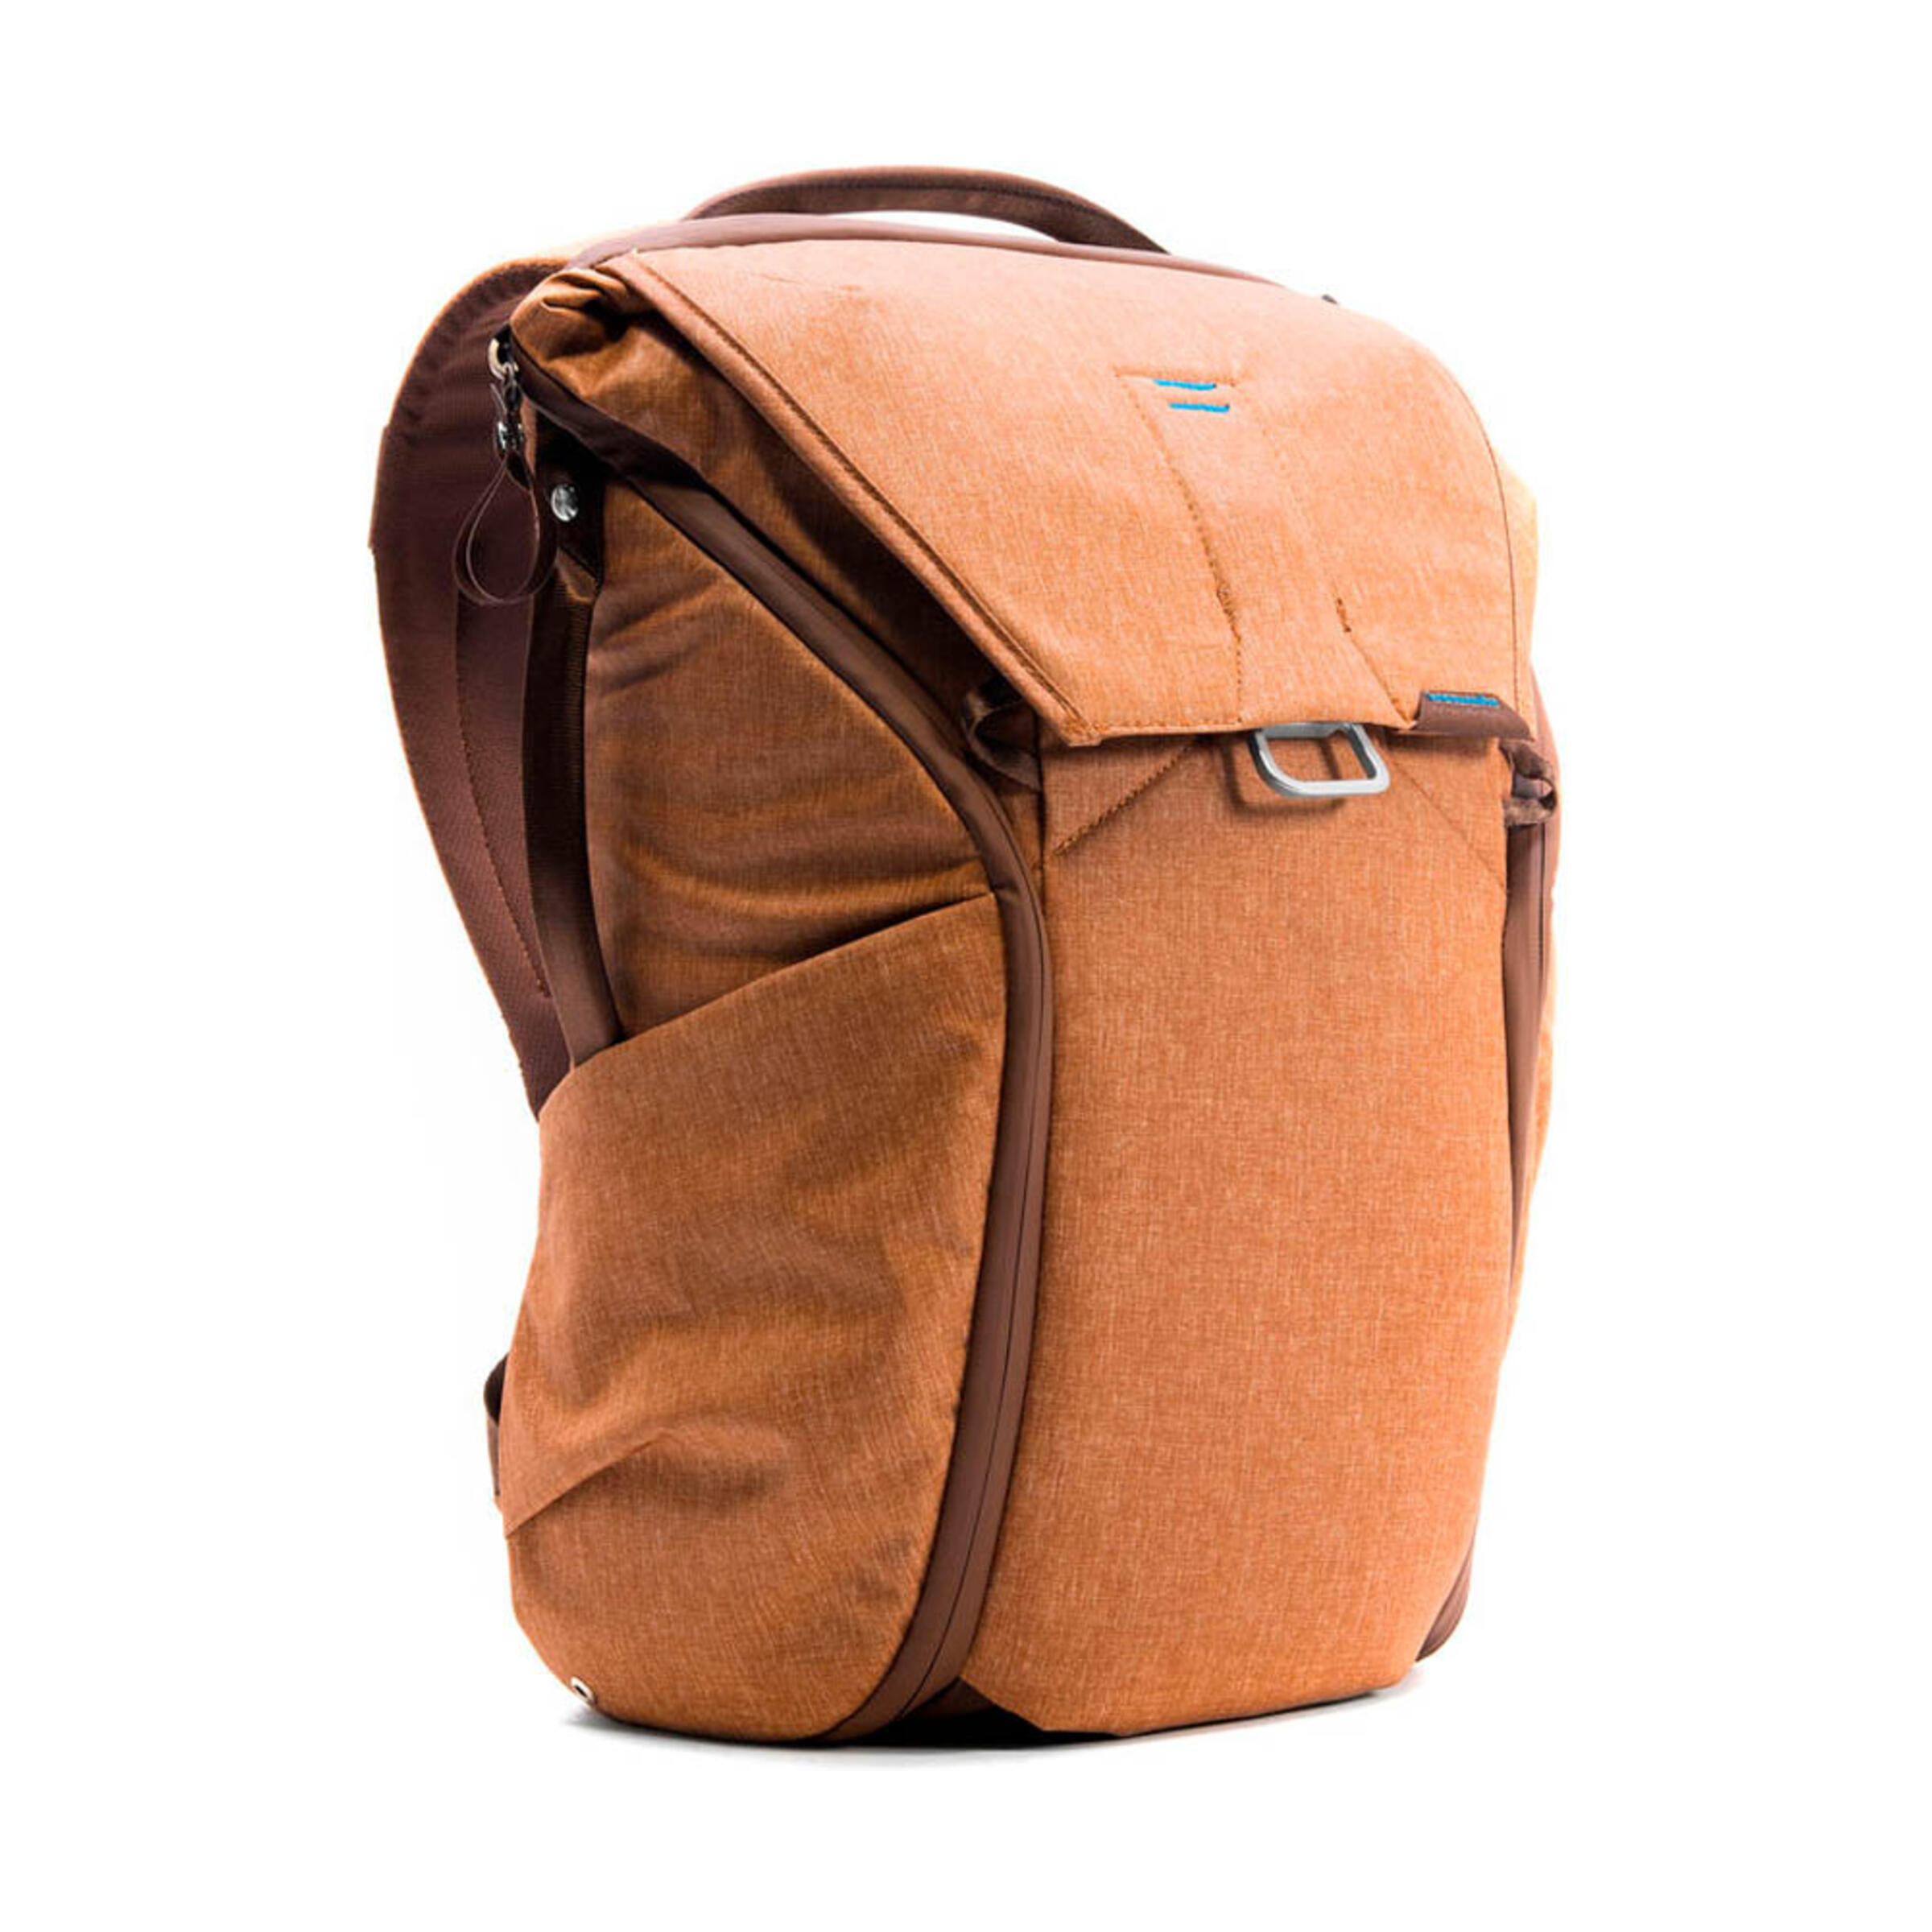 Peak Design Everyday Backpack 20L : Tan